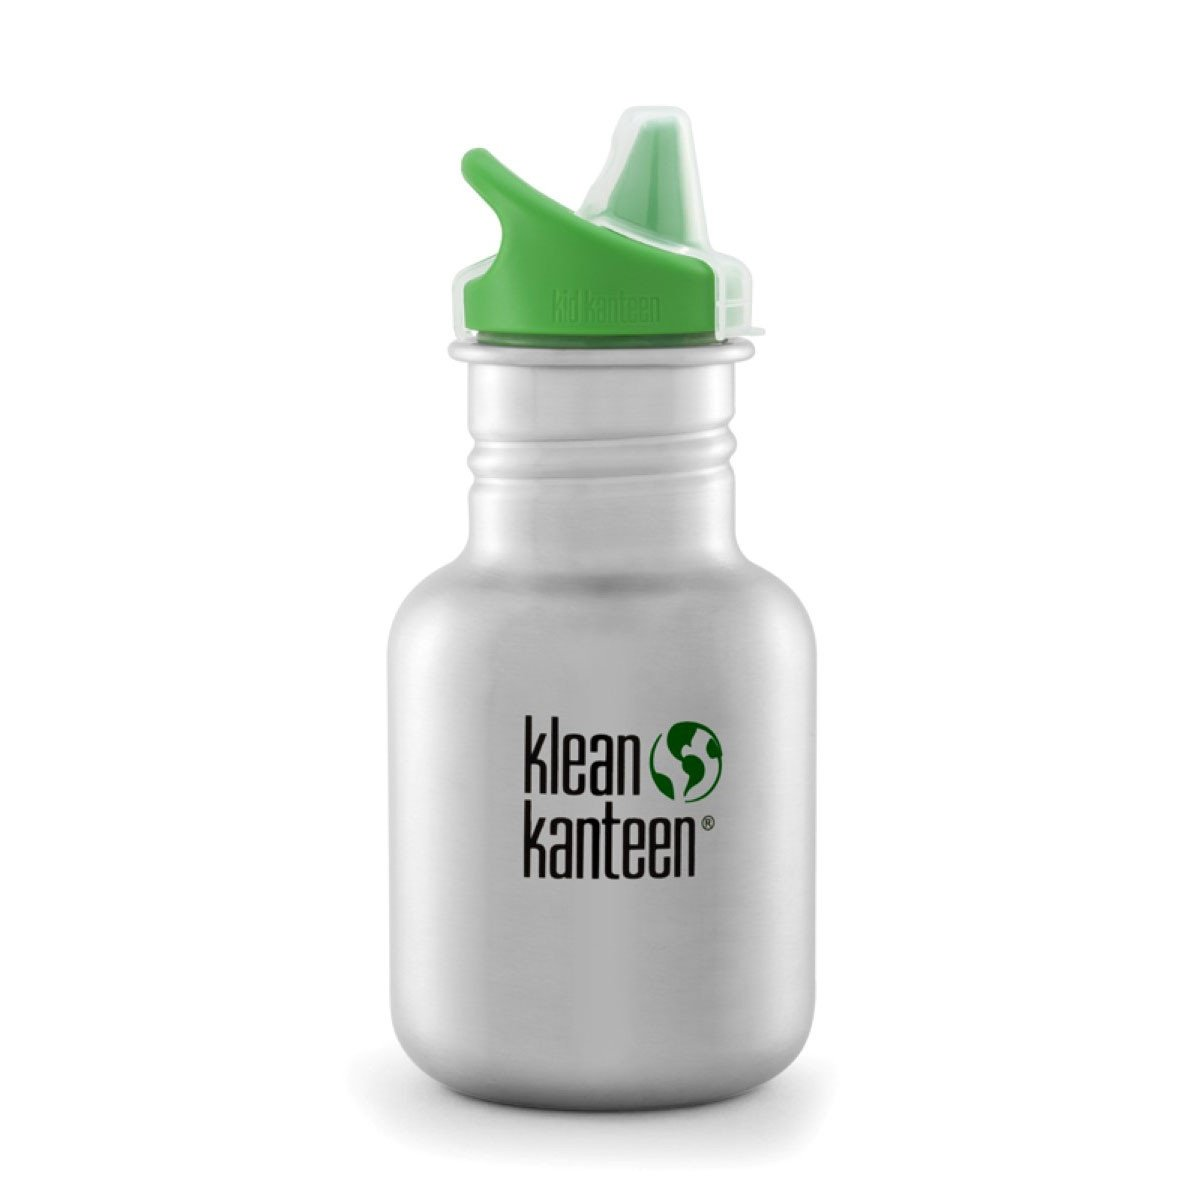 Klean Kanteen Kid Kanteen 355ml 12oz Stainless Steel Bottle Klean Kanteen Sippy Cups Sippy / Brushed Stainless at Little Earth Nest Eco Shop